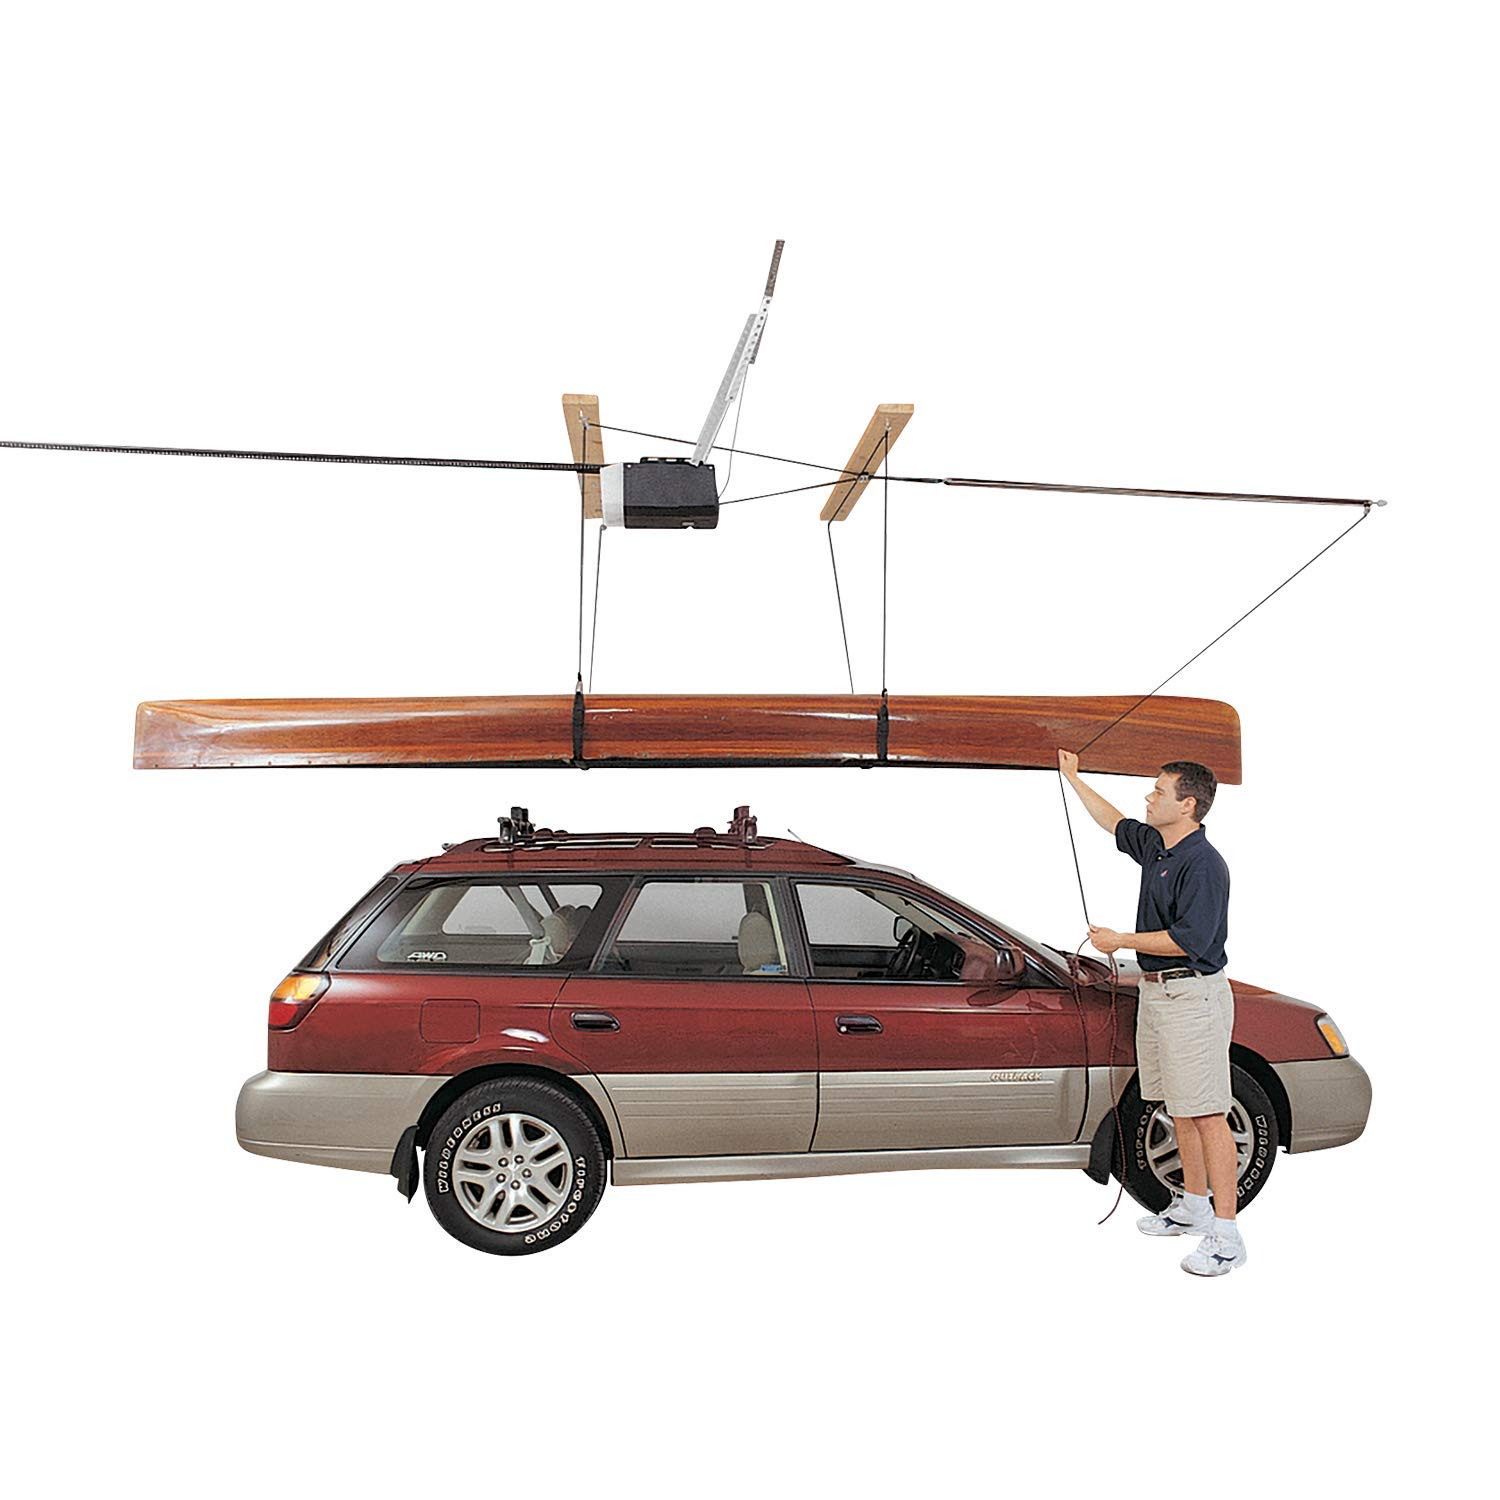 HARKEN SUP, Canoe, and Kayak Garage Storage Ceiling Hoist   4 Point System   for 16ft Ceilings, 45lbs Max Load   3:1 Mechanical Advantage   Easy Lift, Single-Person, Hanger, Pulley, Paddleboard, Boat